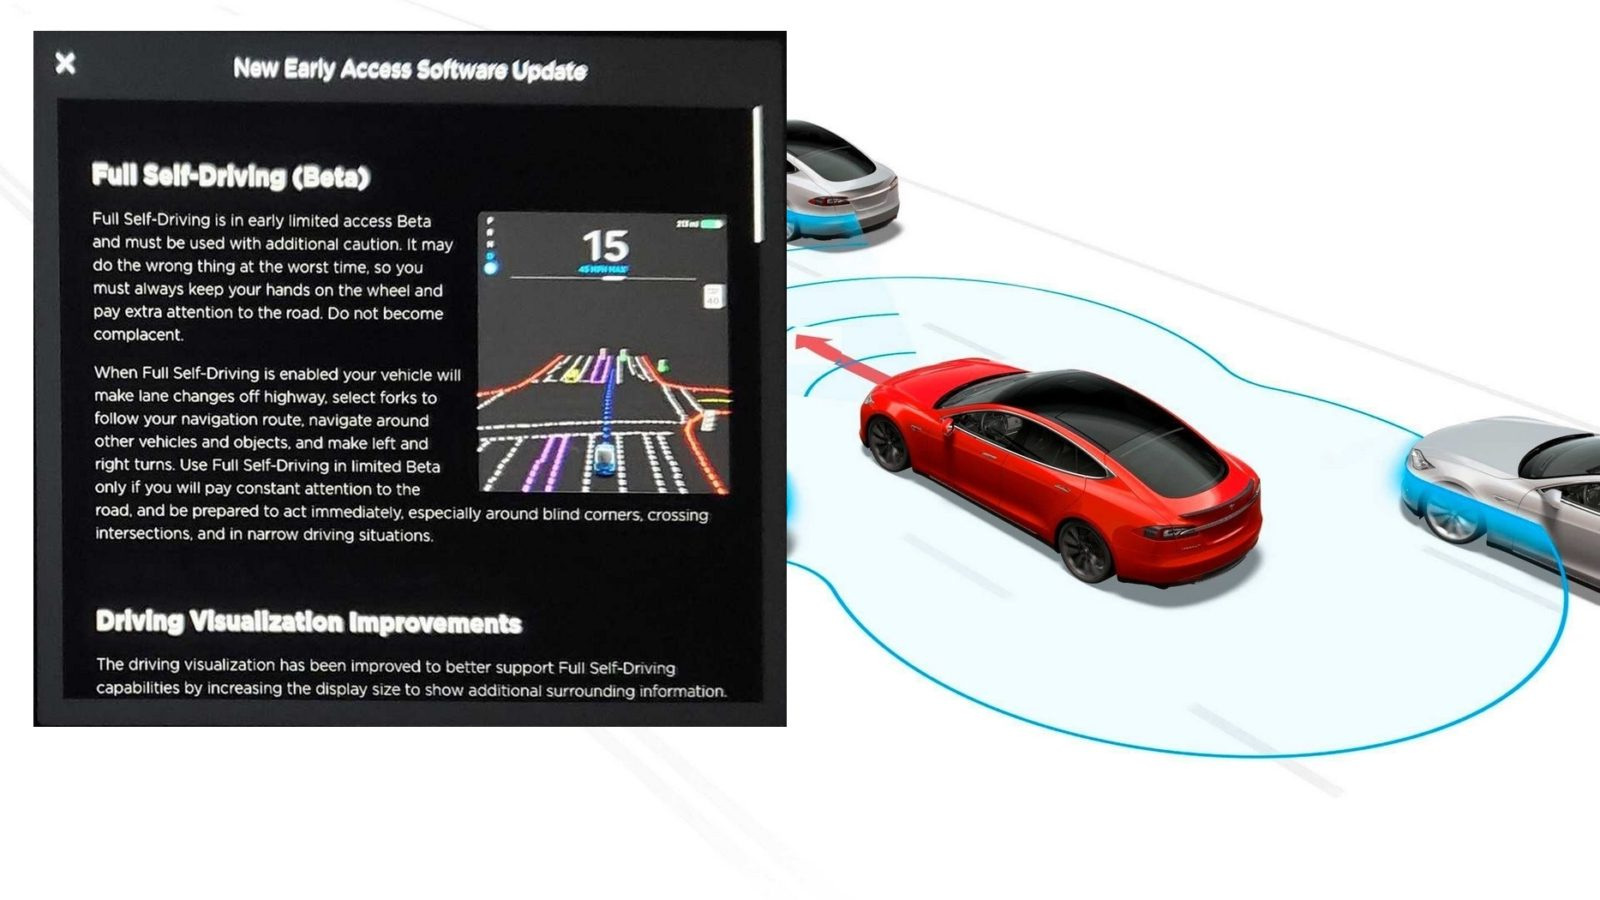 consumer-reports-says-tesla-shouldn't-test-beta-software-on-public-roads